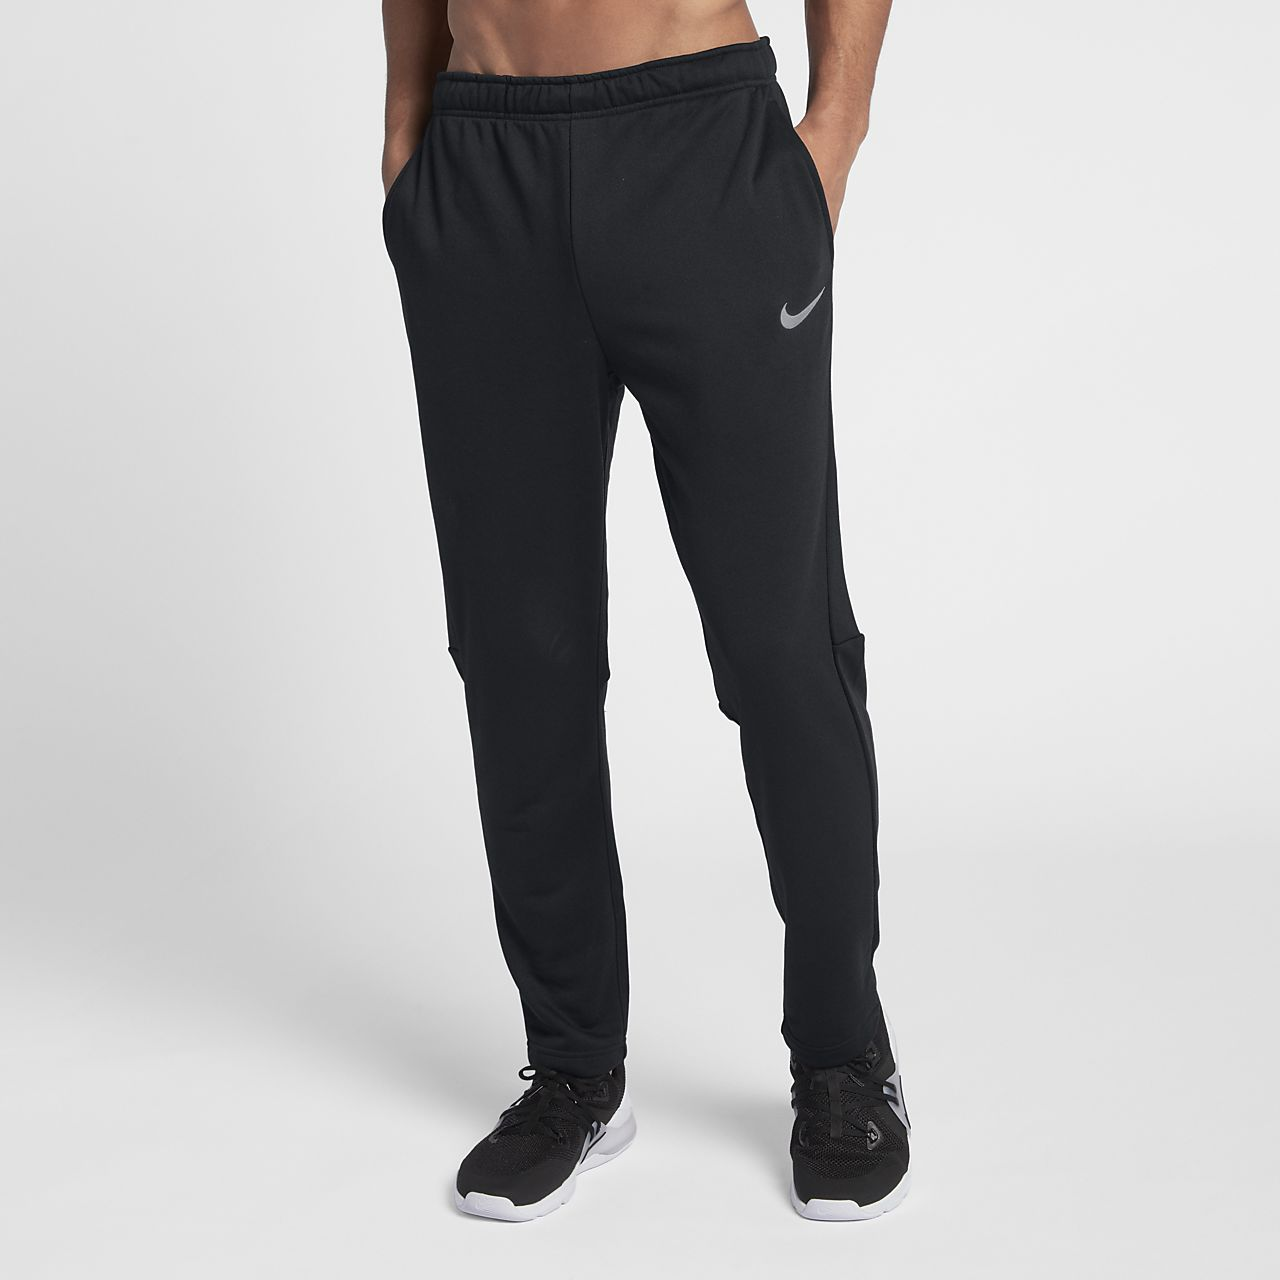 395c048f033af1 Nike Dri-FIT Men s Training Pants. Nike.com